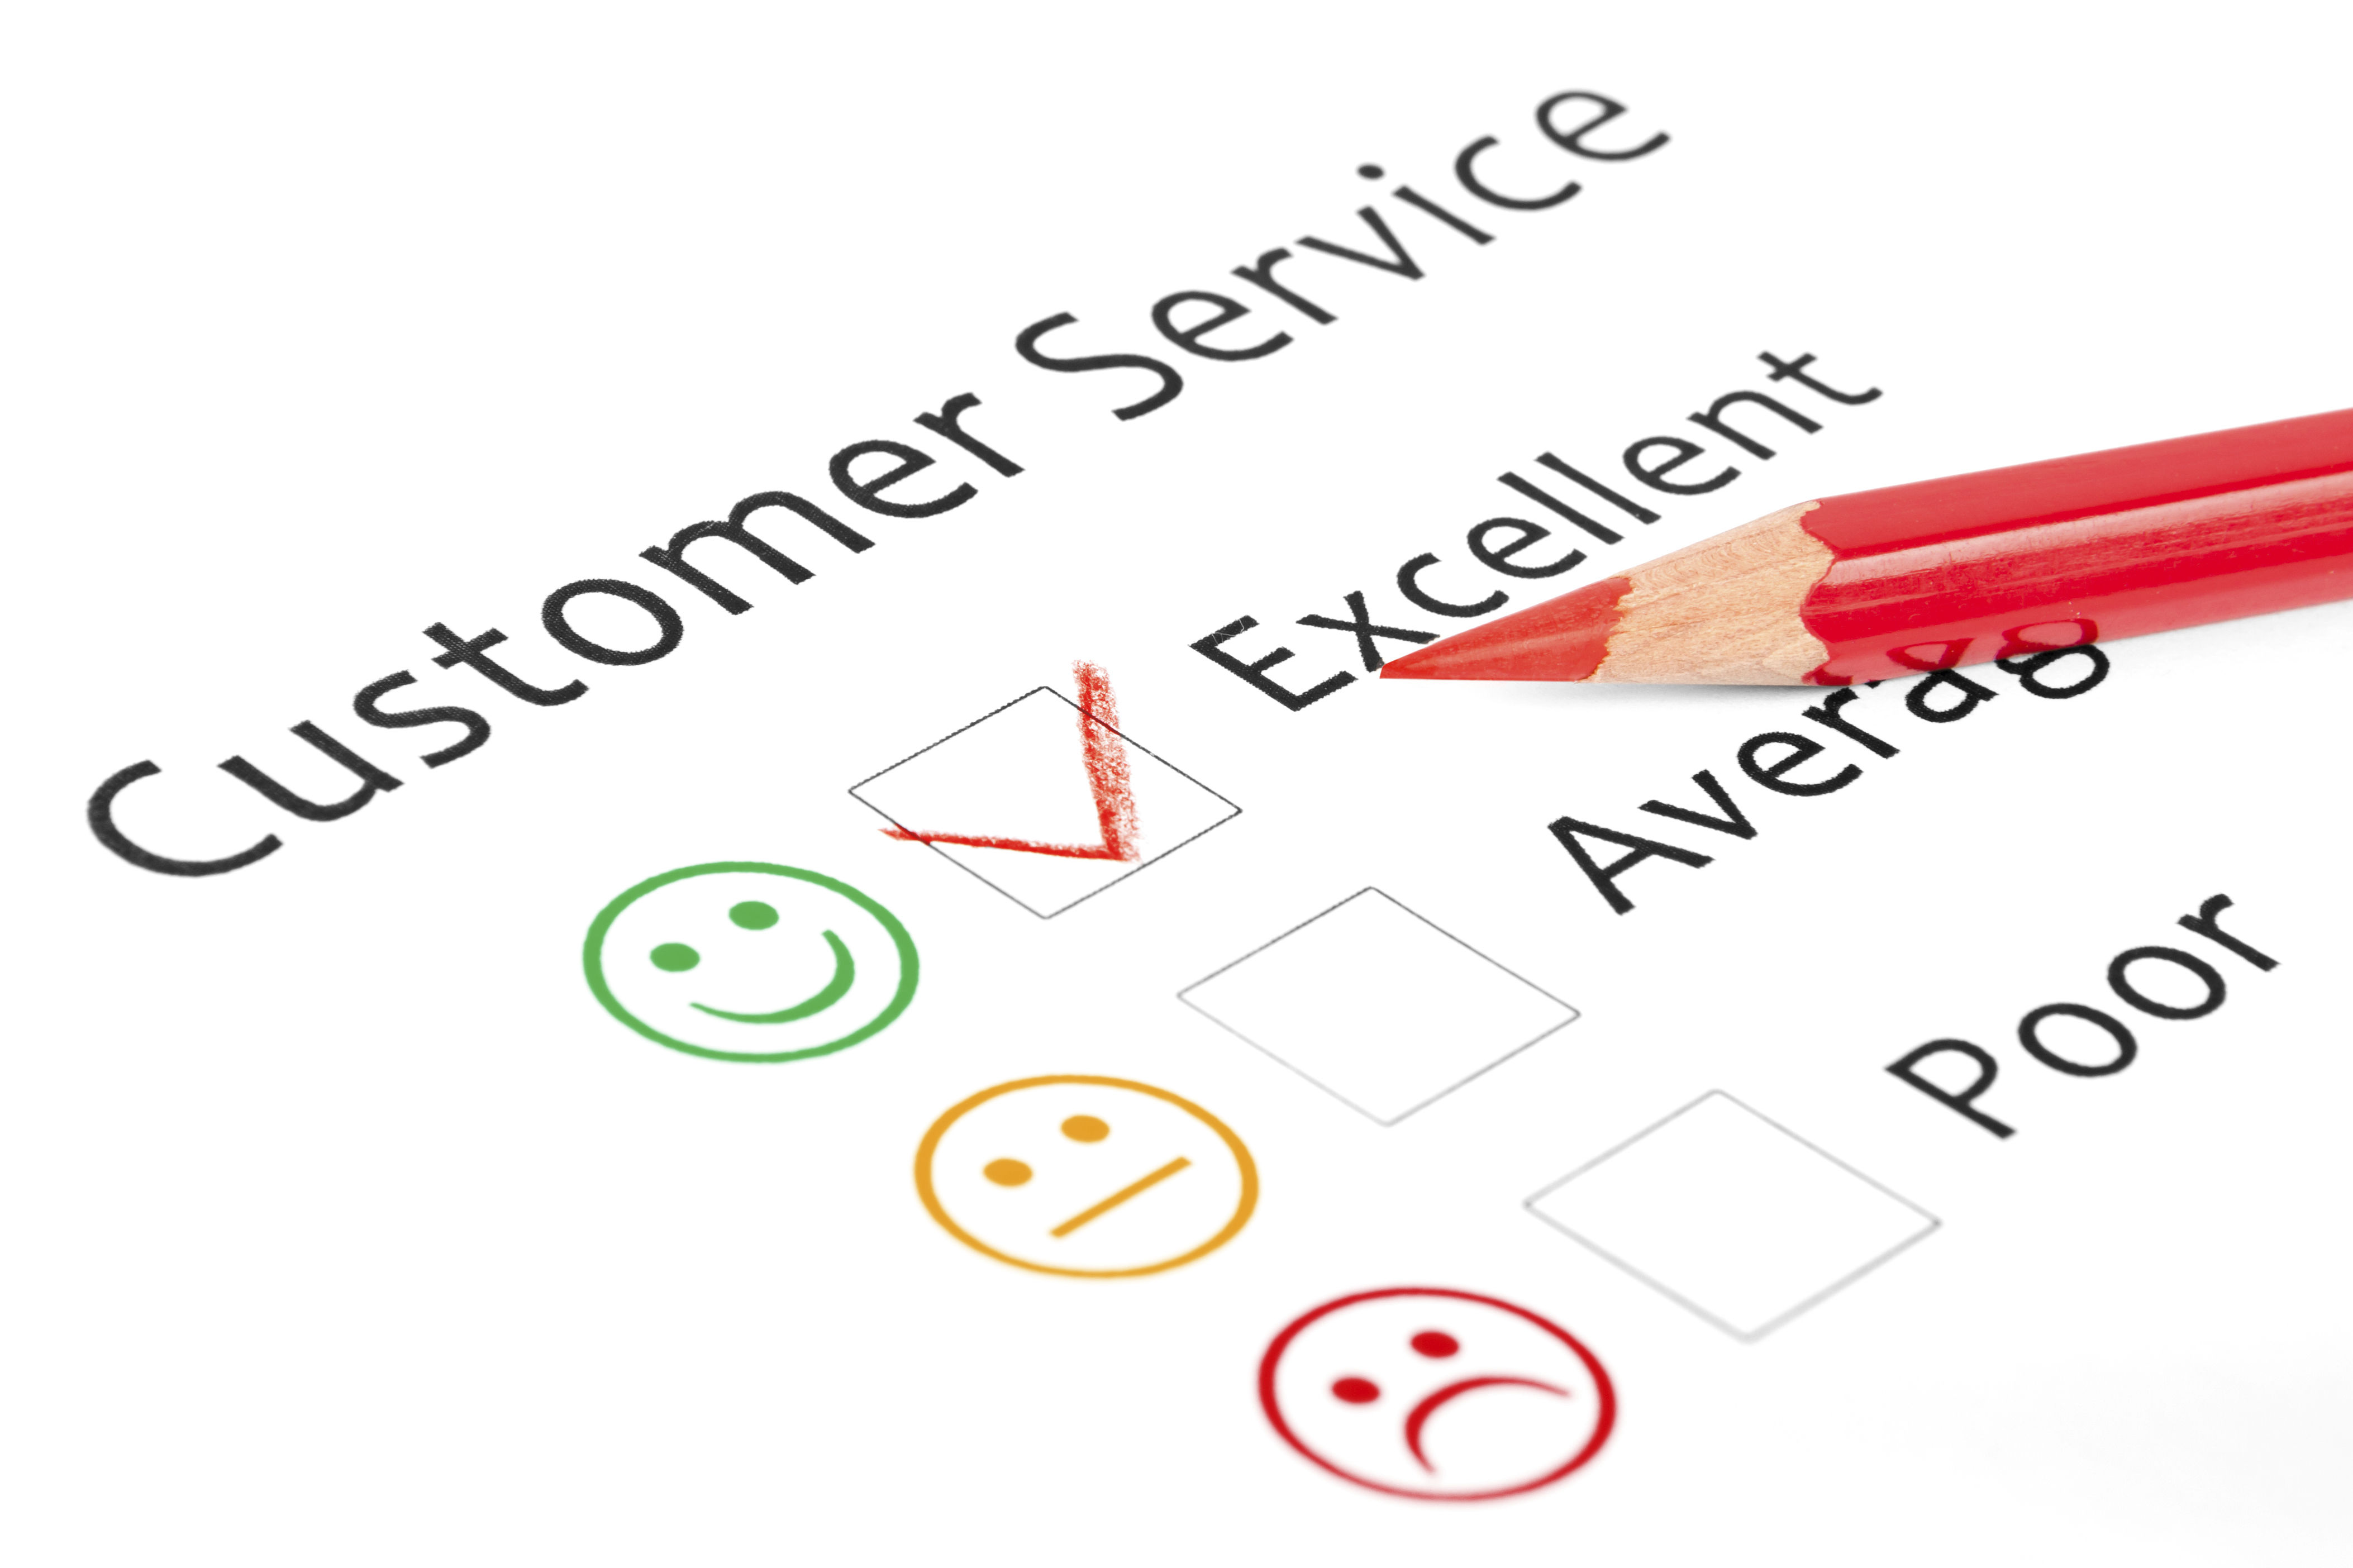 is good customer service all it takes